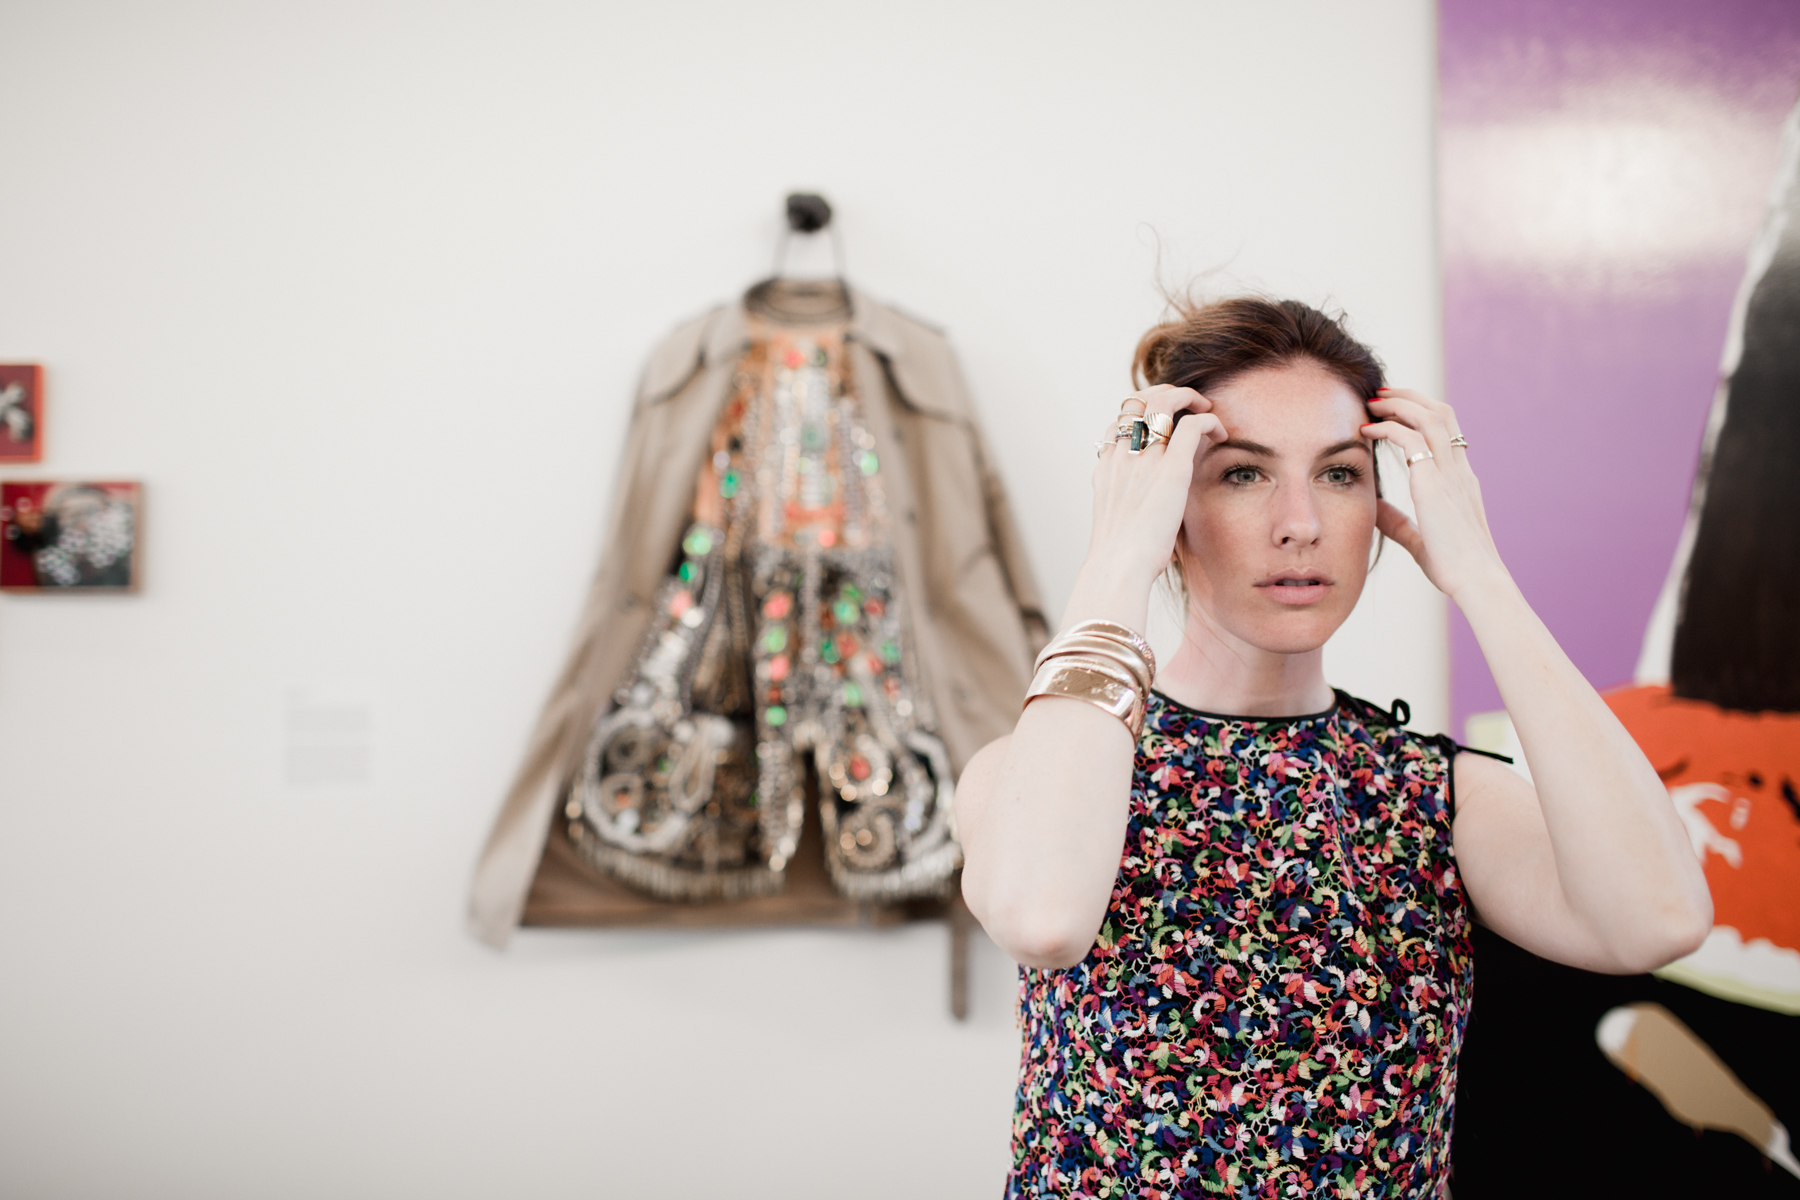 Anna_Cottrell_Eldridge Edit_Tulip_Louise_Fashion_Blogger_Vintage_Dress_Art_Installation_21C_Hotel_Bentonville_Arkansas_MGB_11.jpg